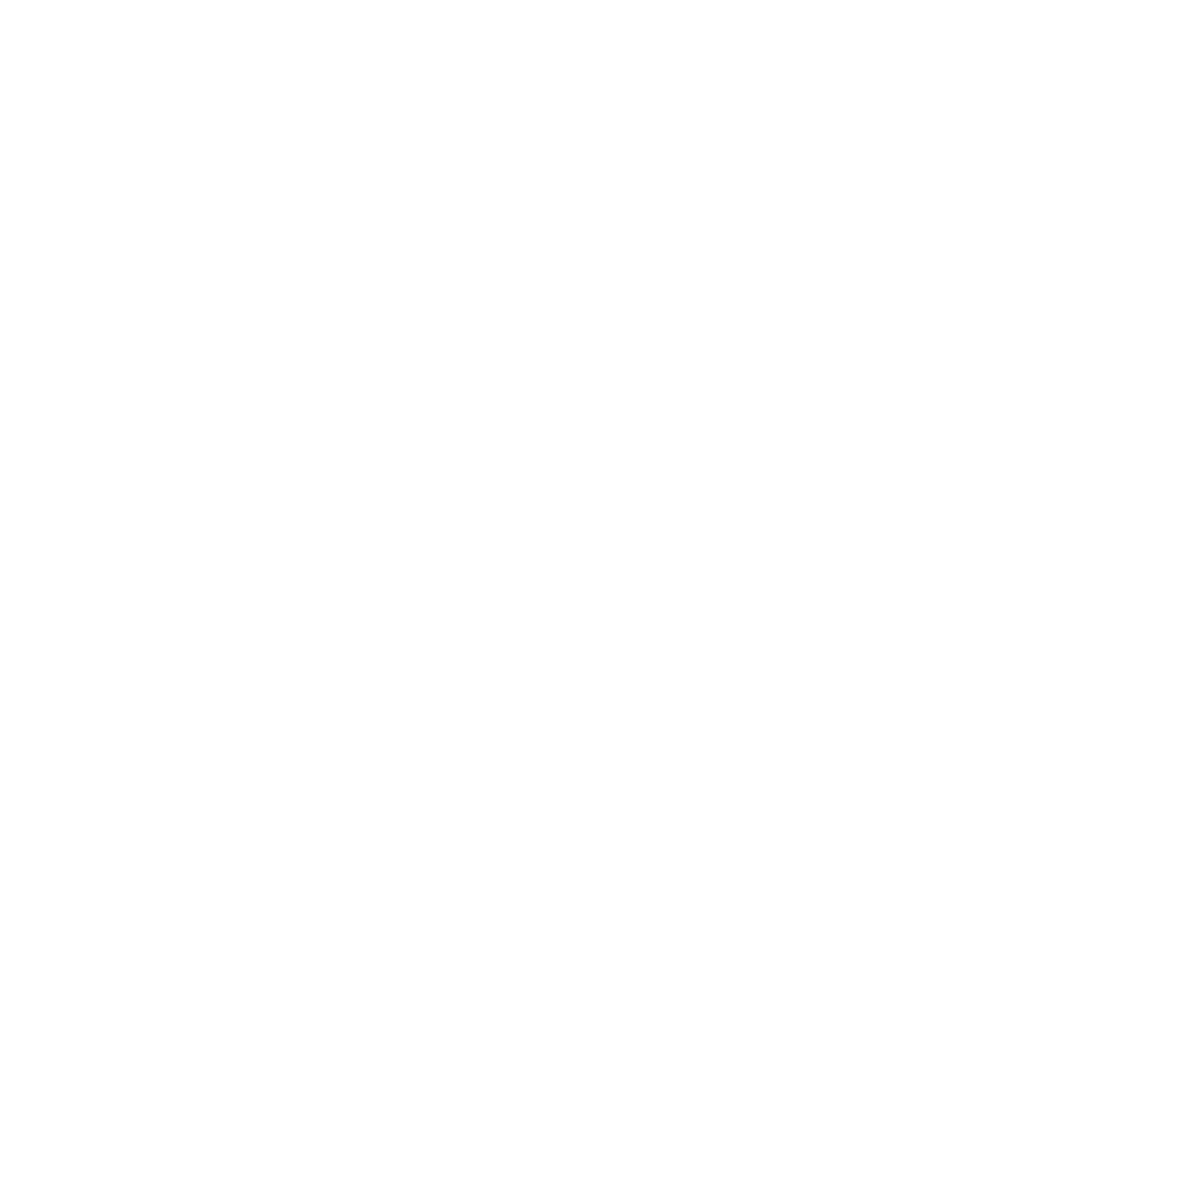 Walt's Bike Shop